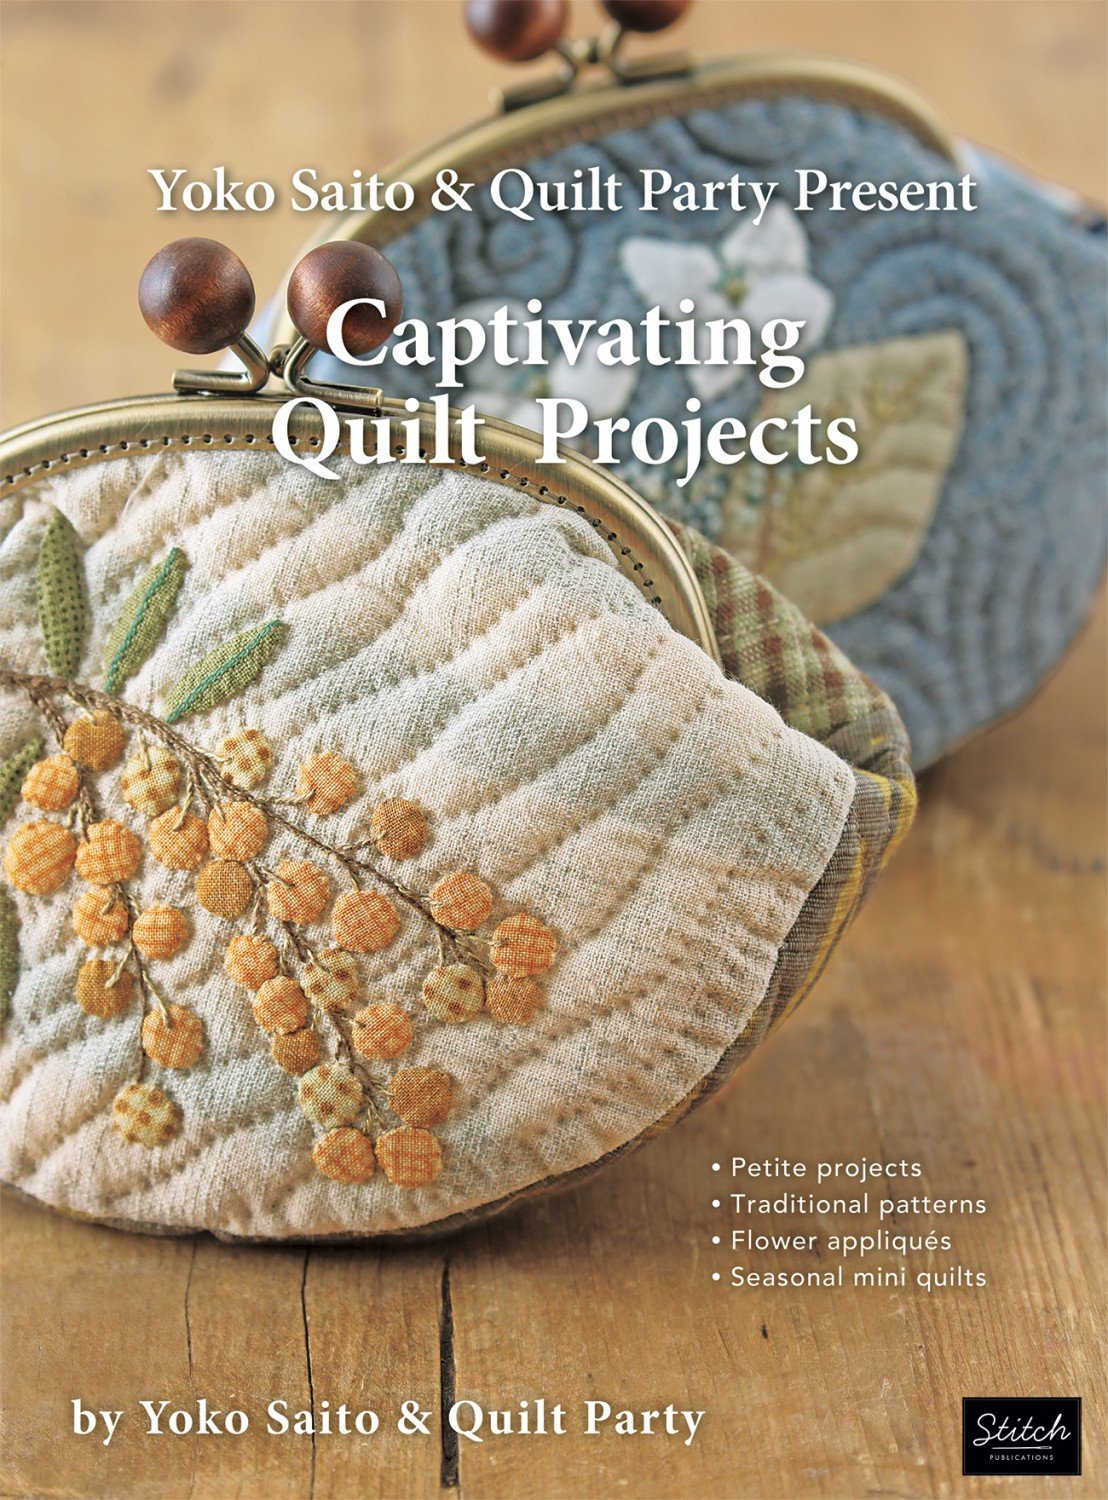 Yoko Saito and Quilt Party Present Captivating Quilt Projects ~RELEASE DATE May 01, 2020~